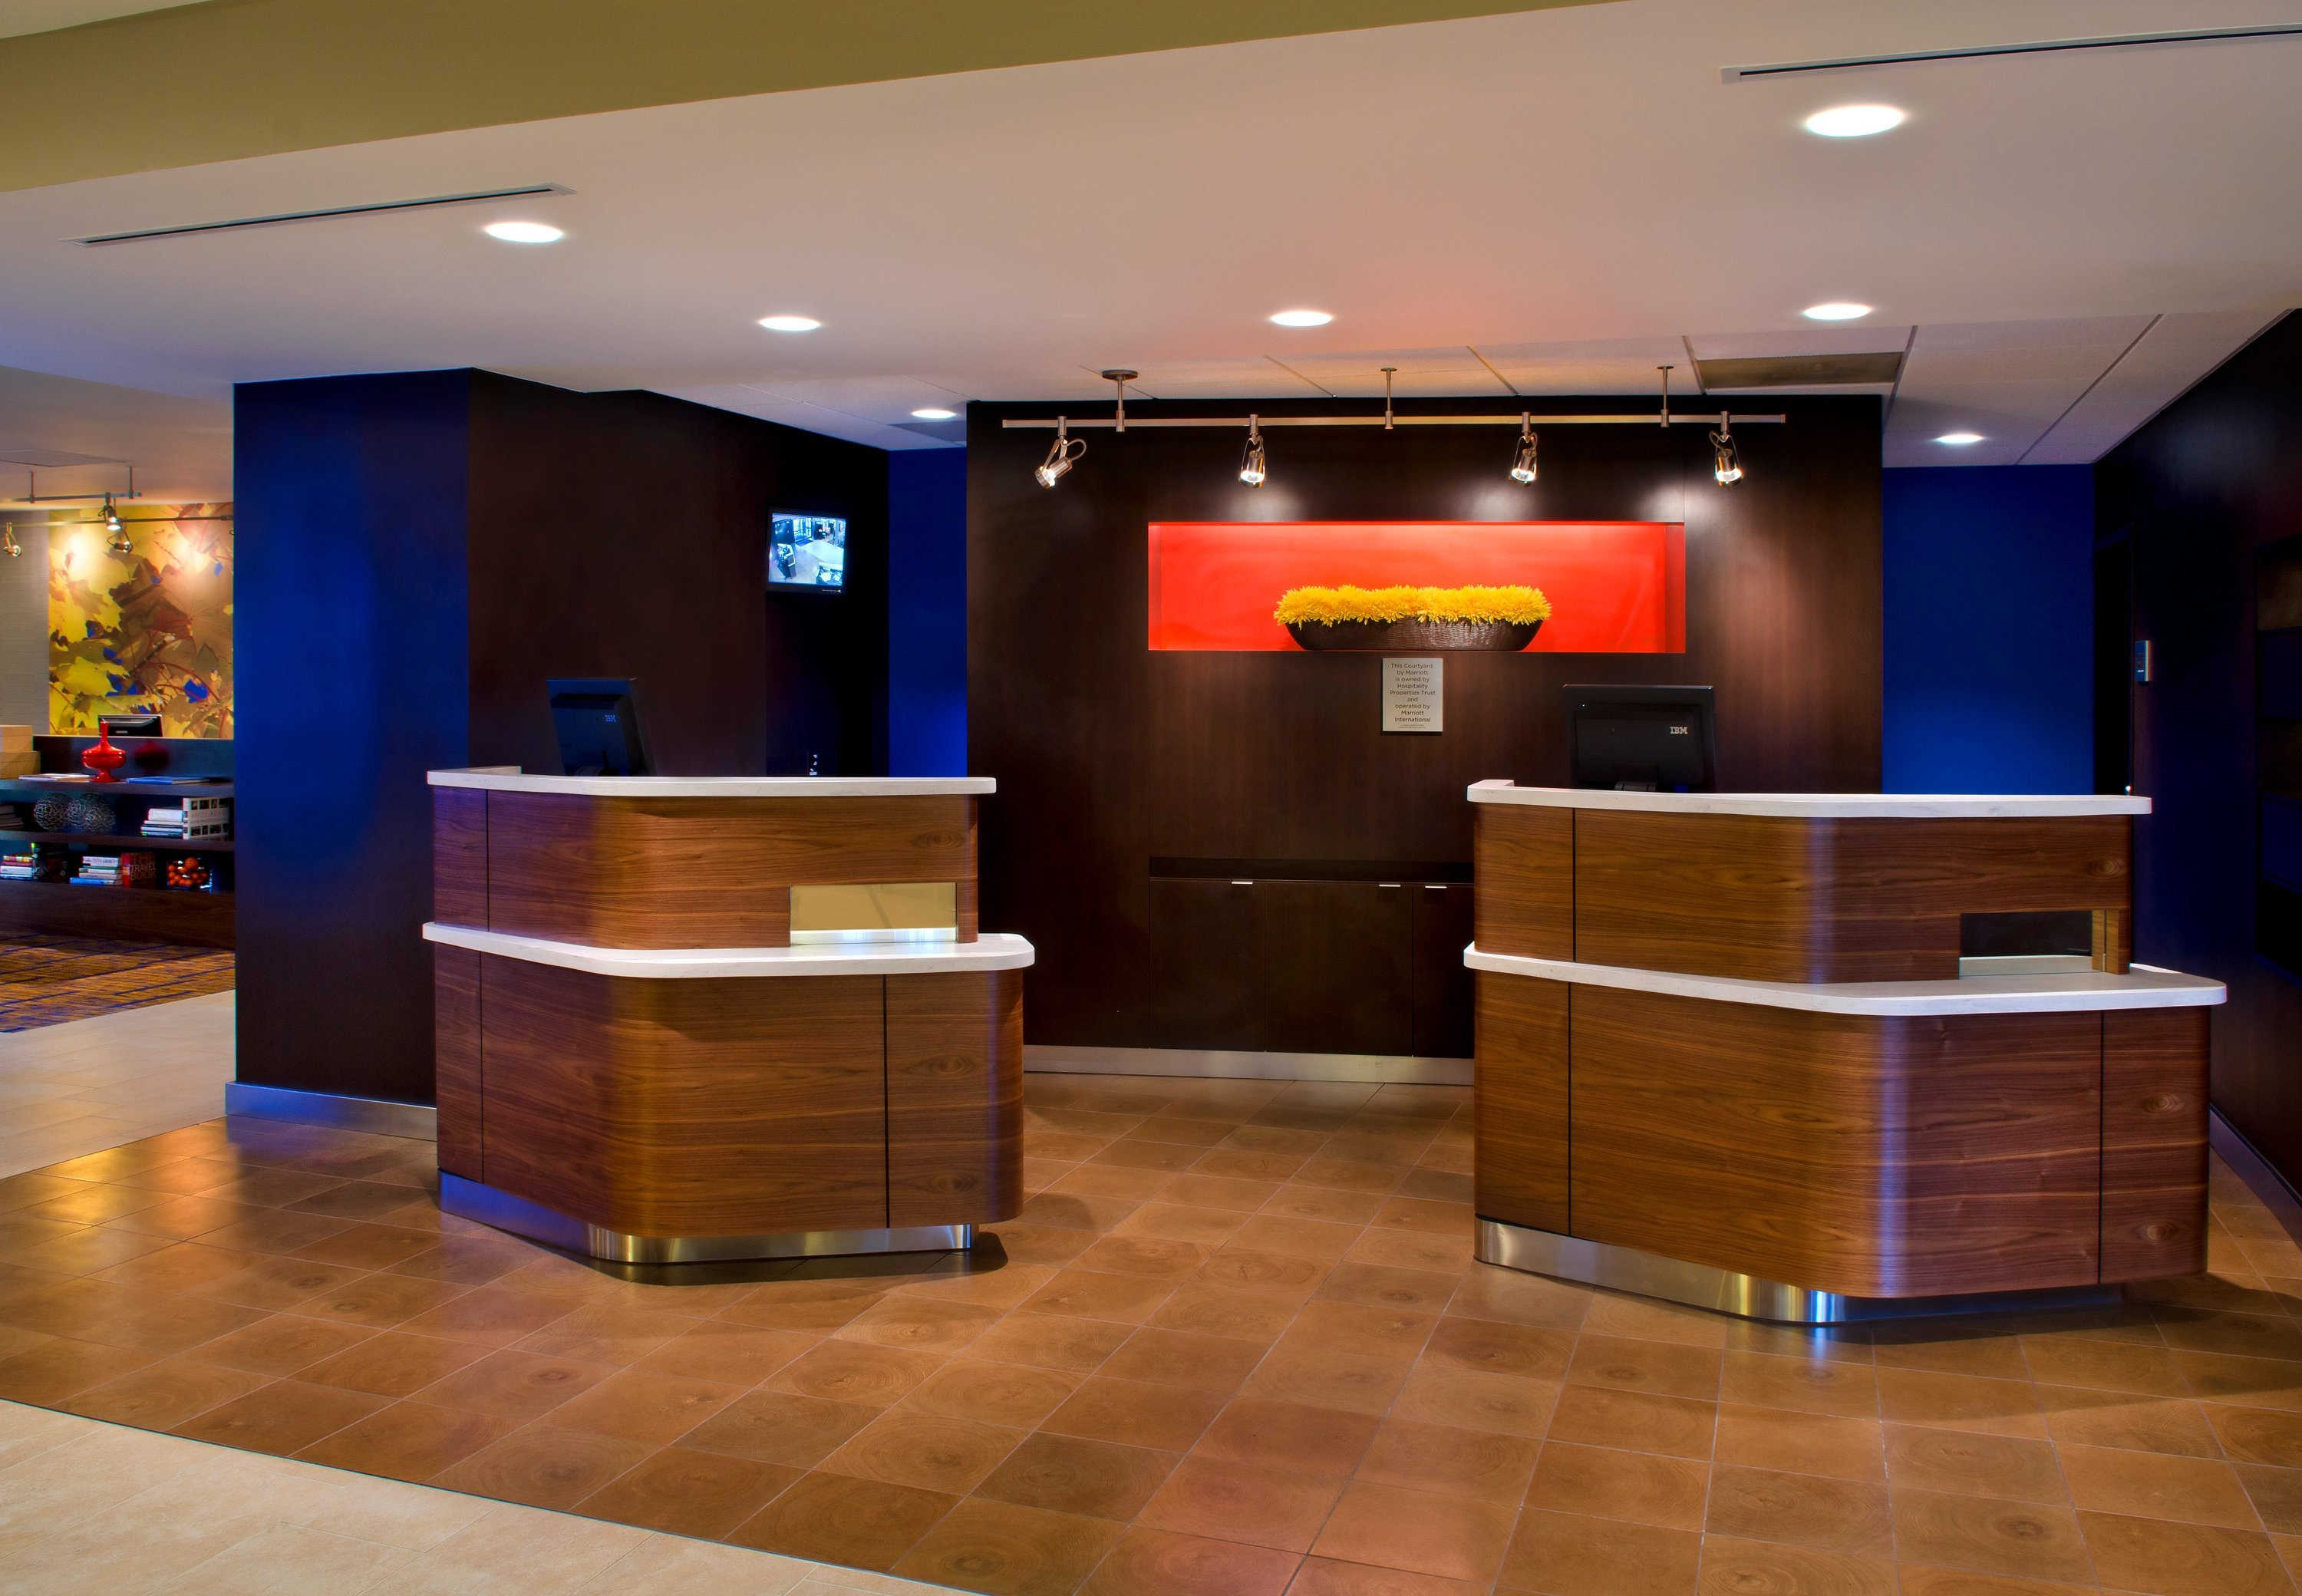 Courtyard by Marriott Boston Foxborough/Mansfield image 18